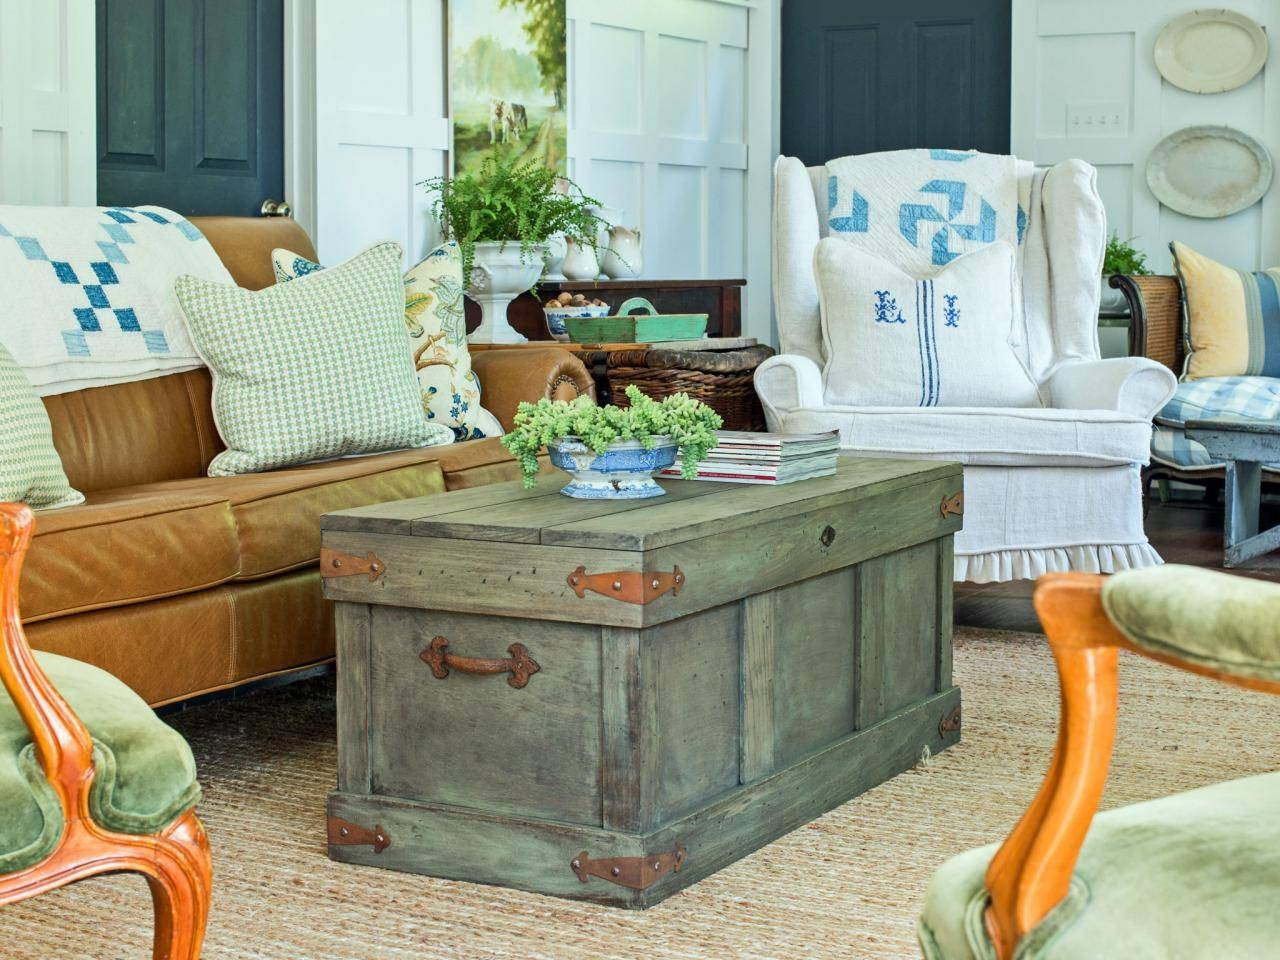 How To Construct A Rustic Trunk-Style Coffee Table | Hgtv intended for Trunk Coffee Tables (Image 13 of 30)